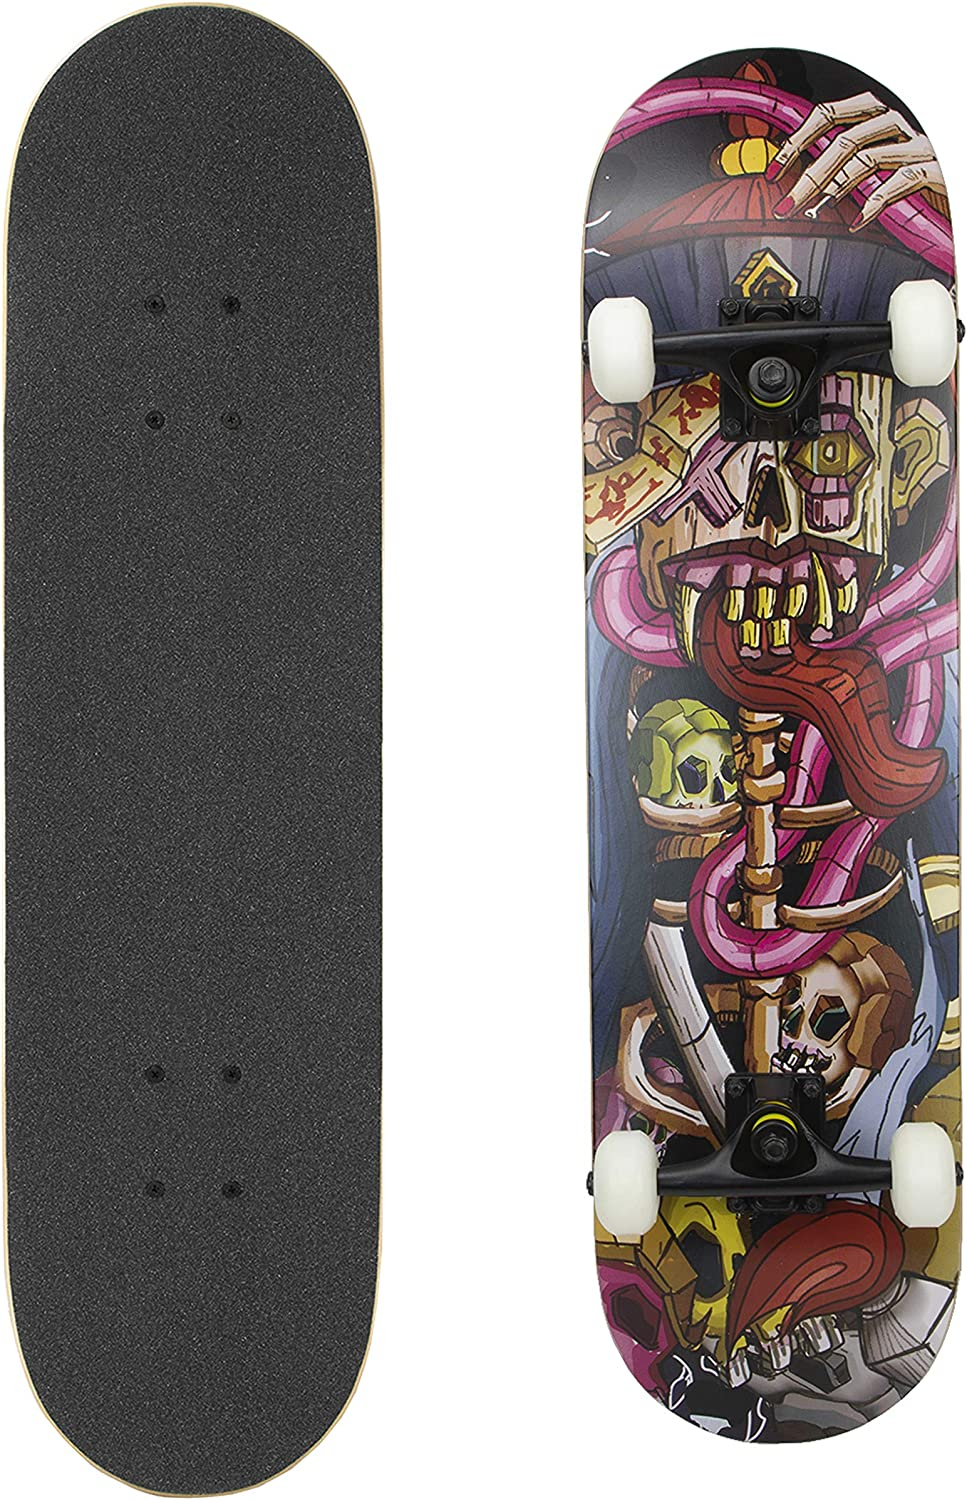 Details about  /Pro 31 inches Complete Skateboards Maple Deck for Teens Beginners Girls Boys